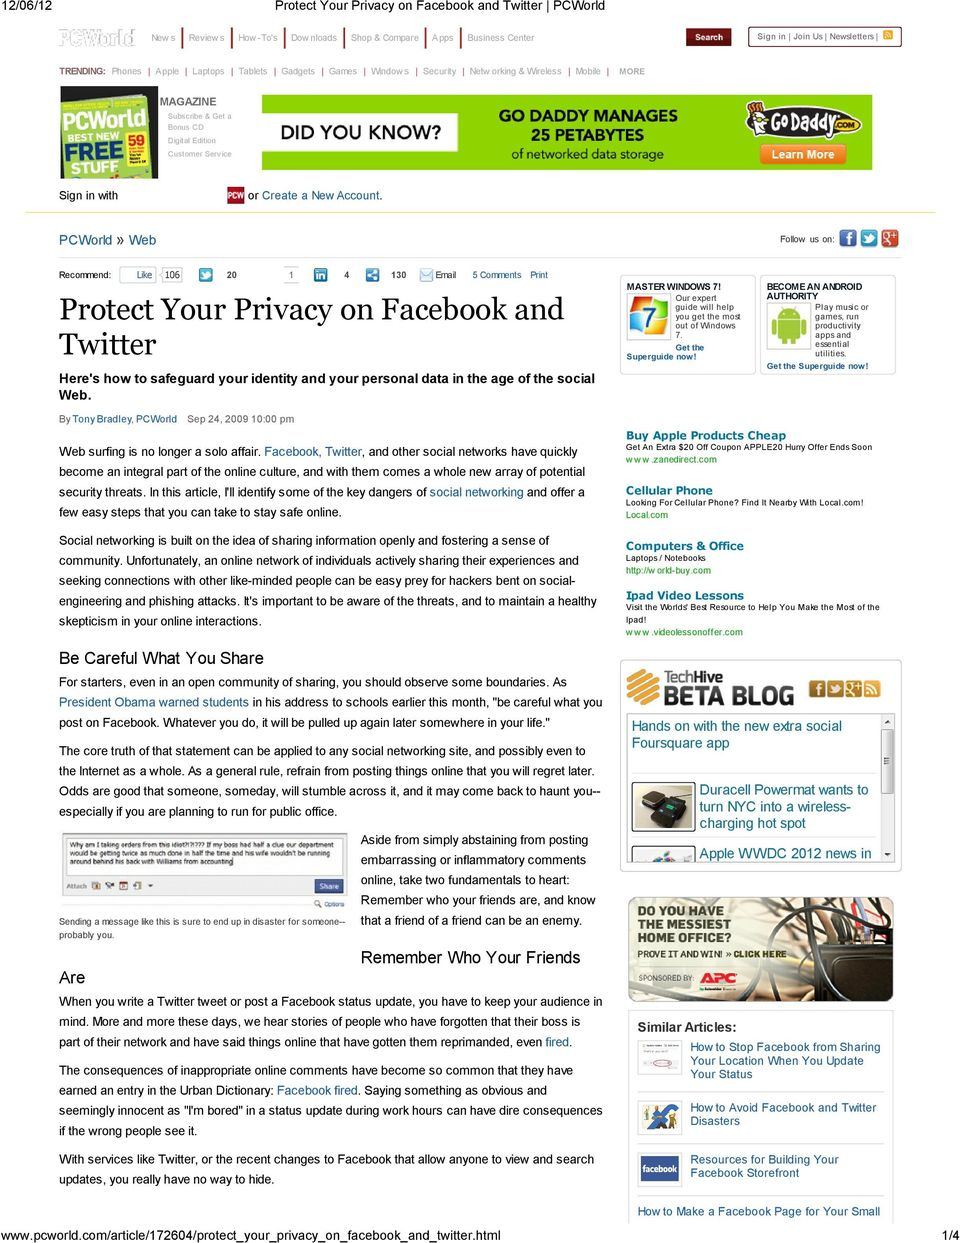 PCWorld» Web Follow us on: Recommend: Like 106 20 1 4 130 Email 5 Comments Print Protect Your Privacy on Facebook and Twitter Here's how to safeguard your identity and your personal data in the age